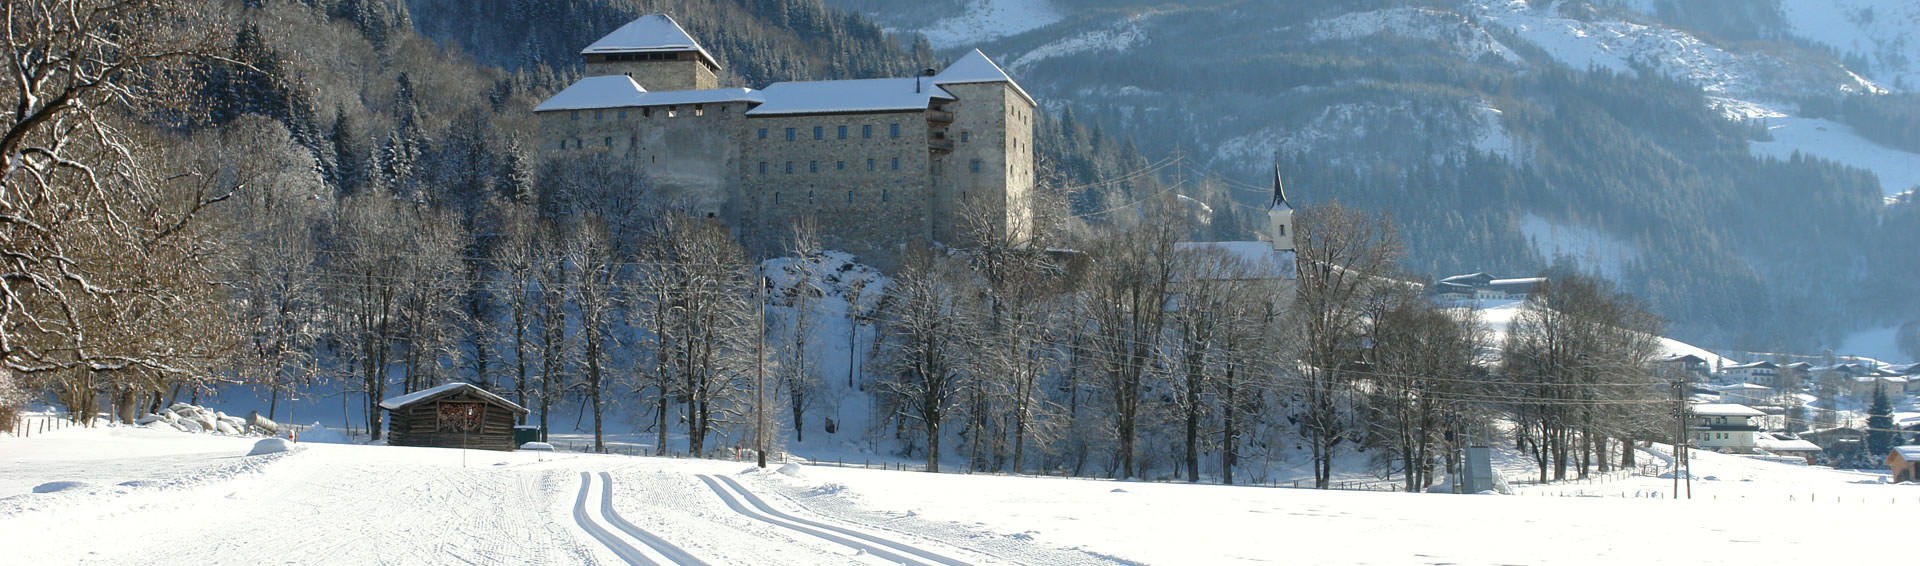 Winter landscape with a castle in the background